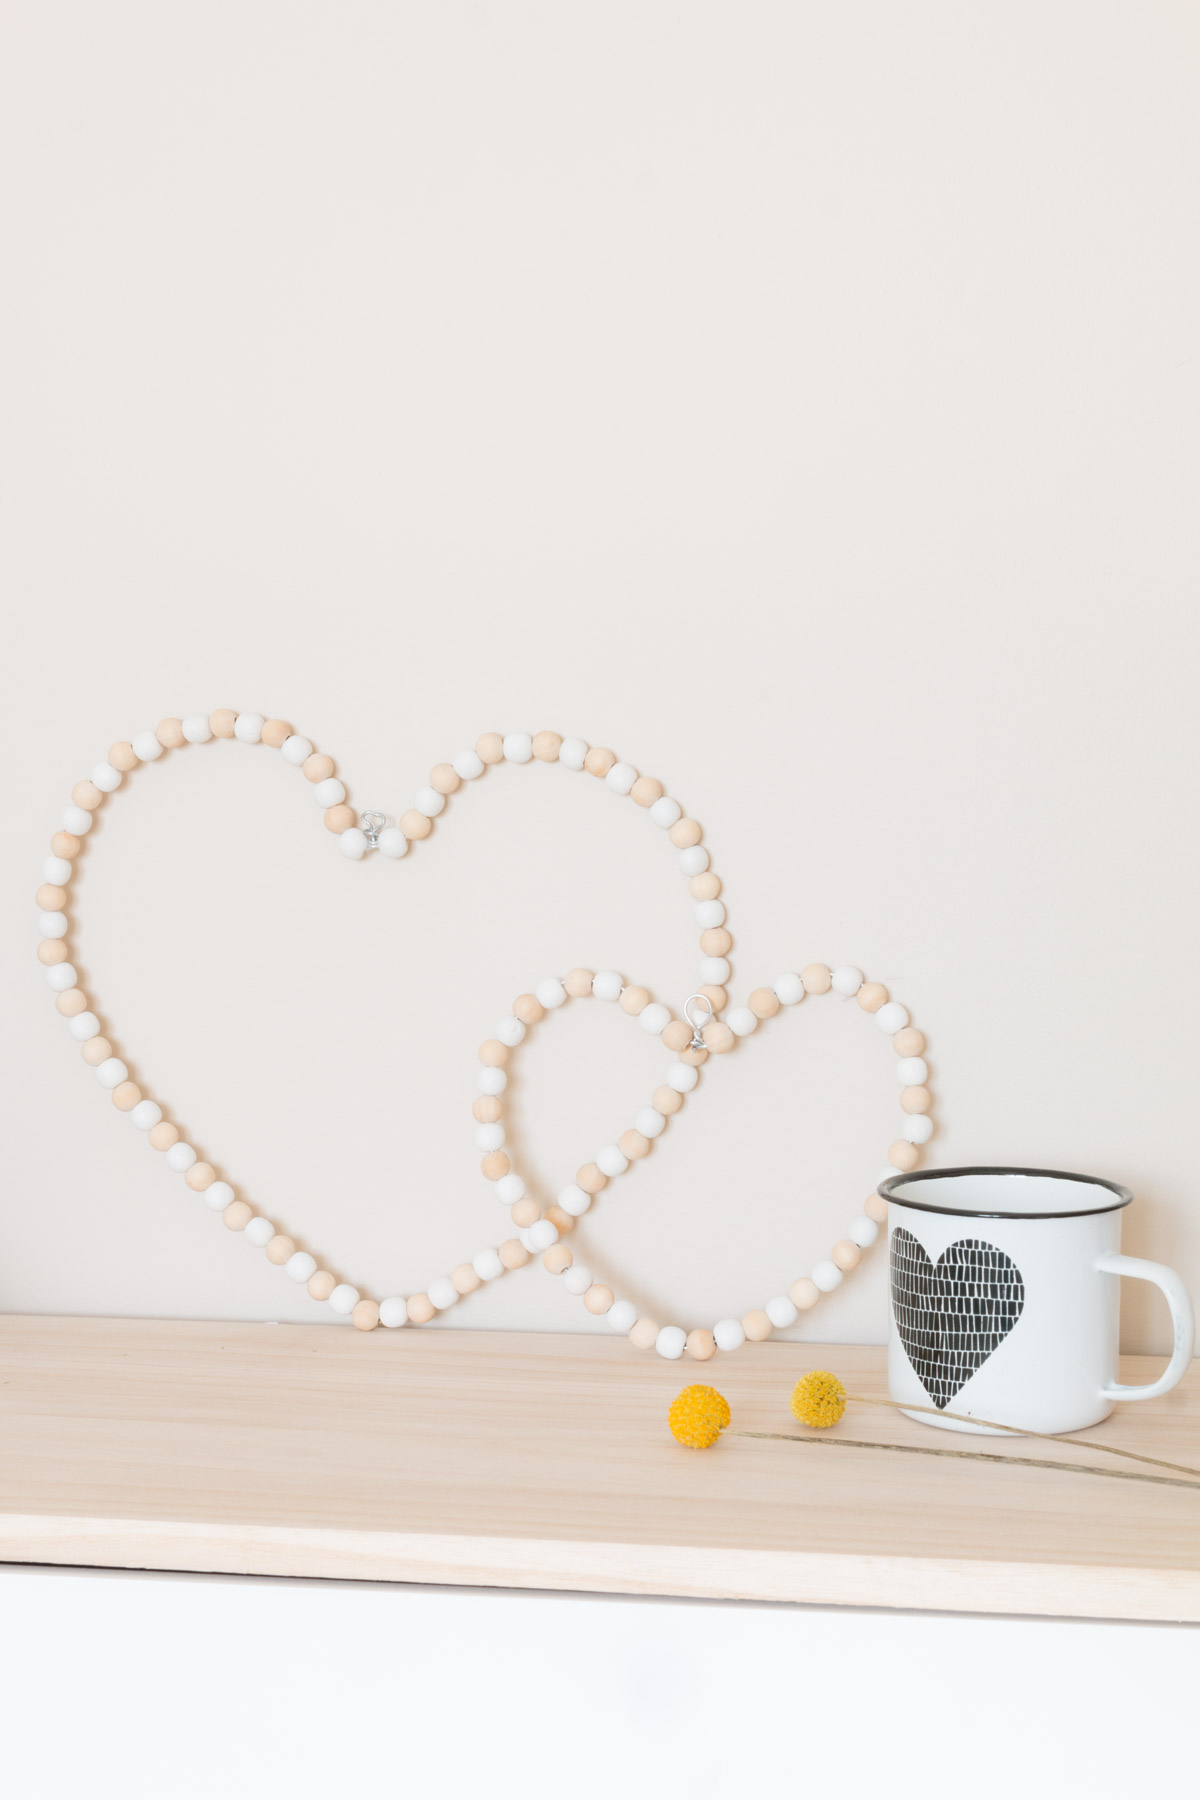 Pearl wood heart to decorate your home sweet home I Sp4nkblog-3